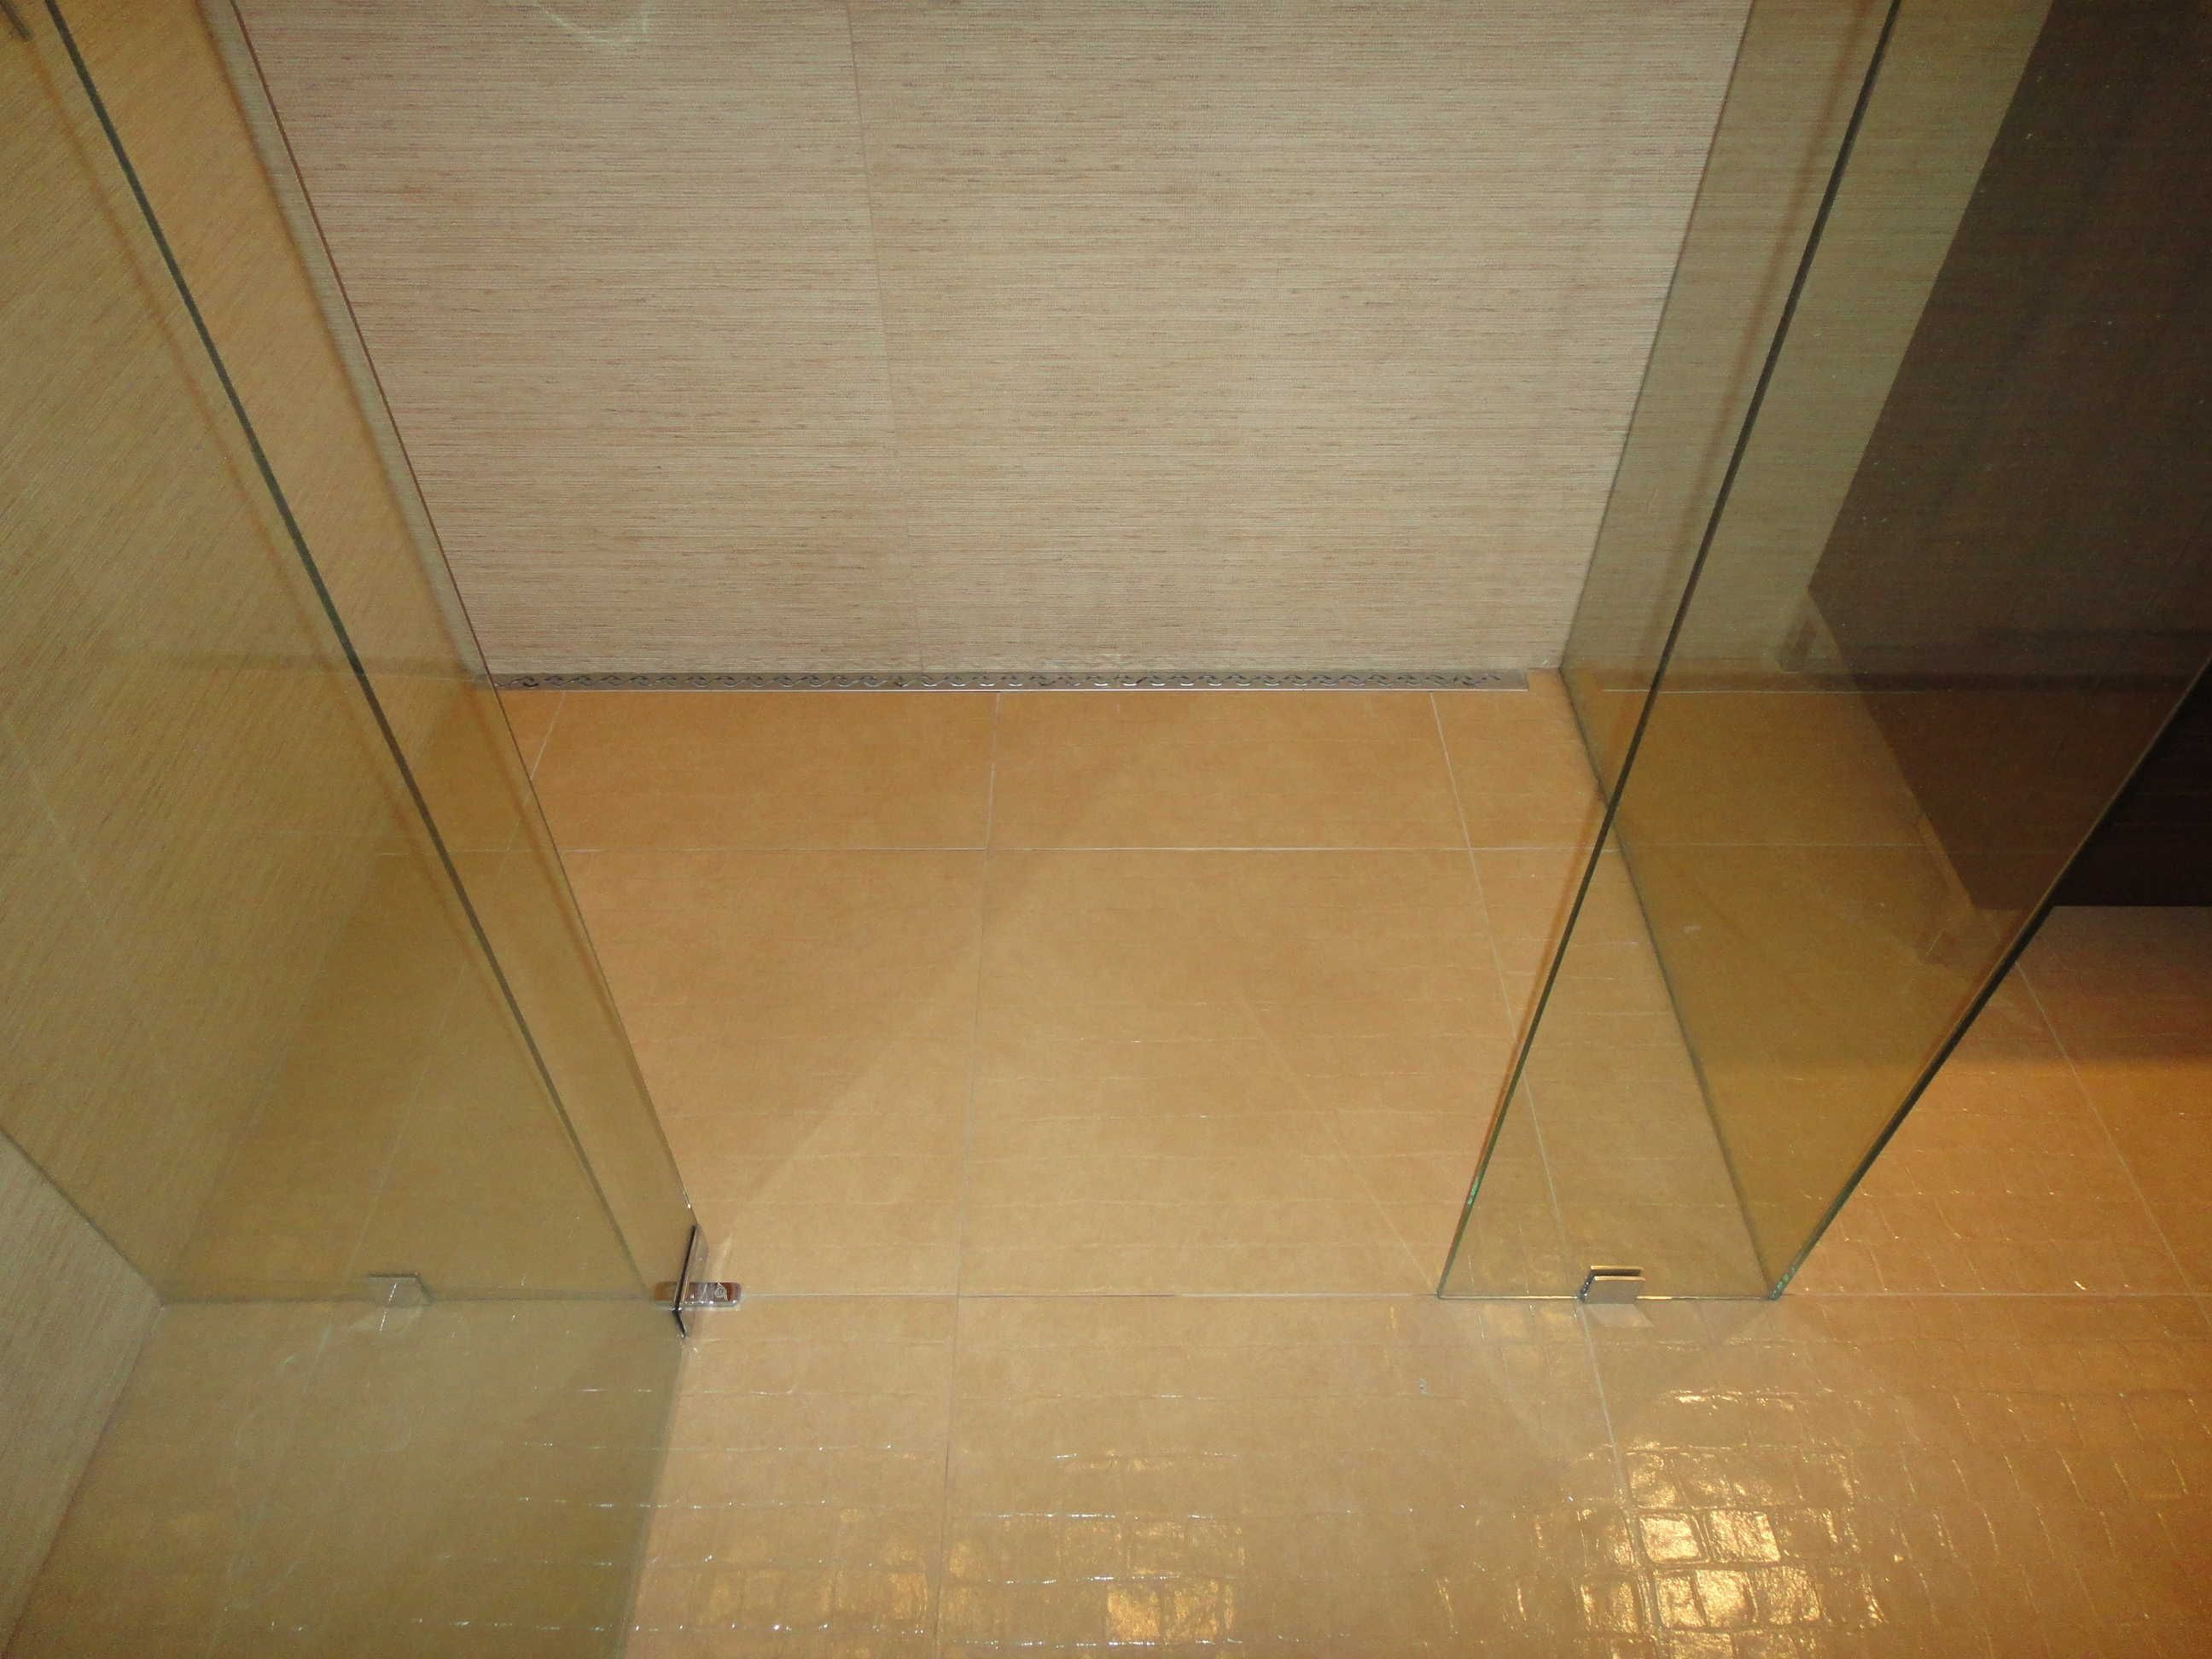 texture tile Tile Showers without Doors | low profile shower drain is gives your shower a modern edge